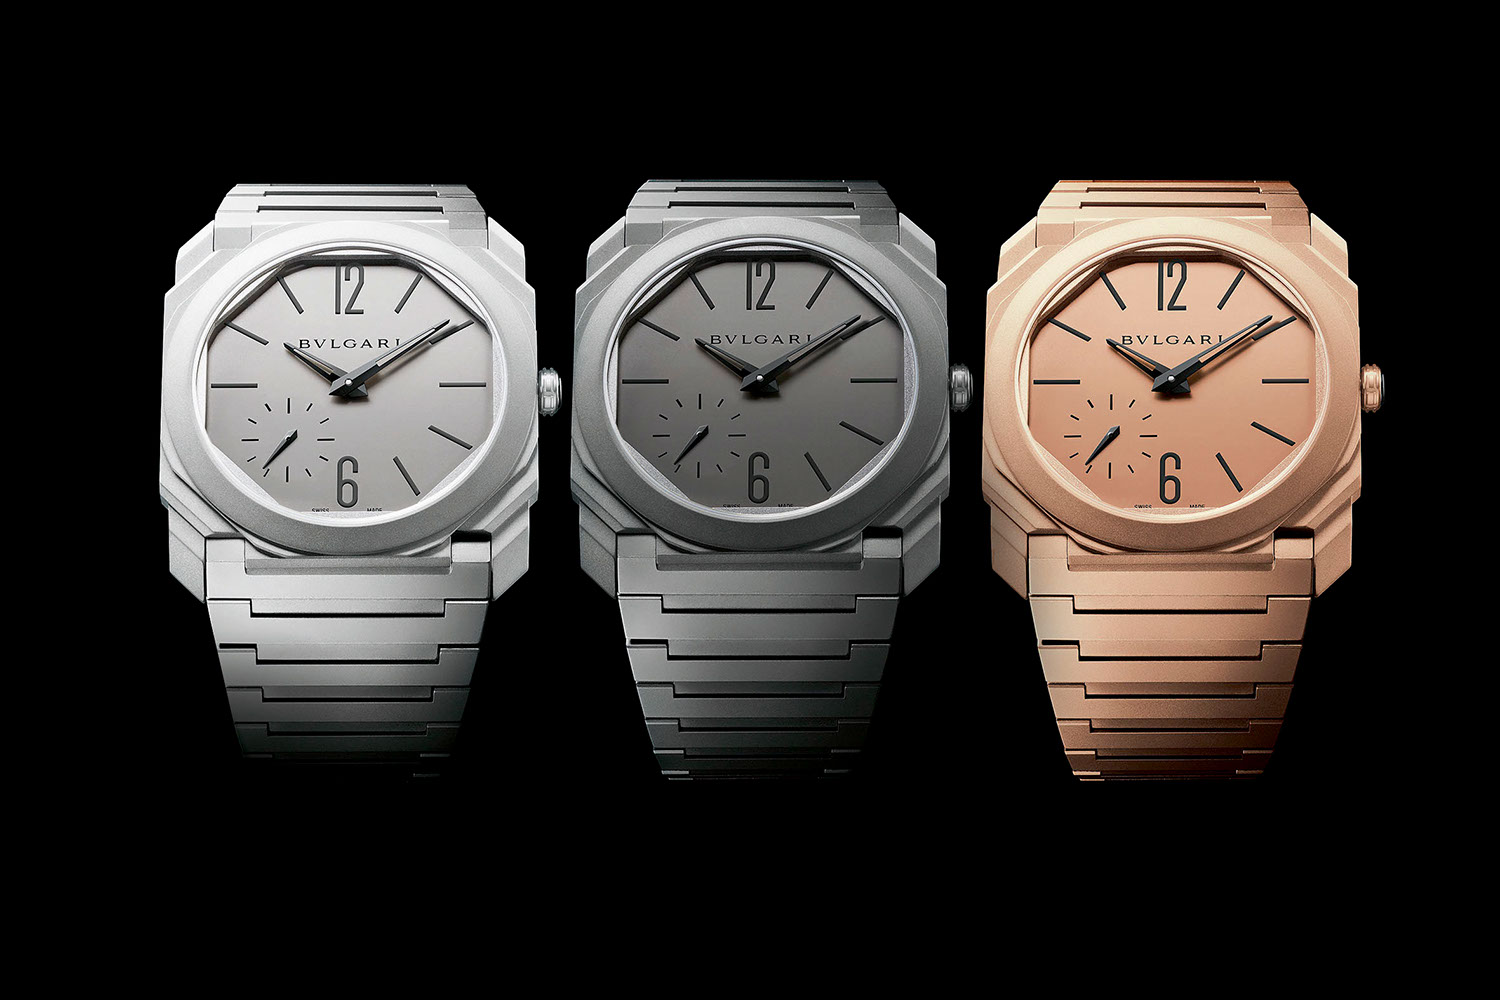 The Octo Finissimo Automatic sandblasted rhodium plated steel (left), titanium (middle) and sandblasted rose gold (right)